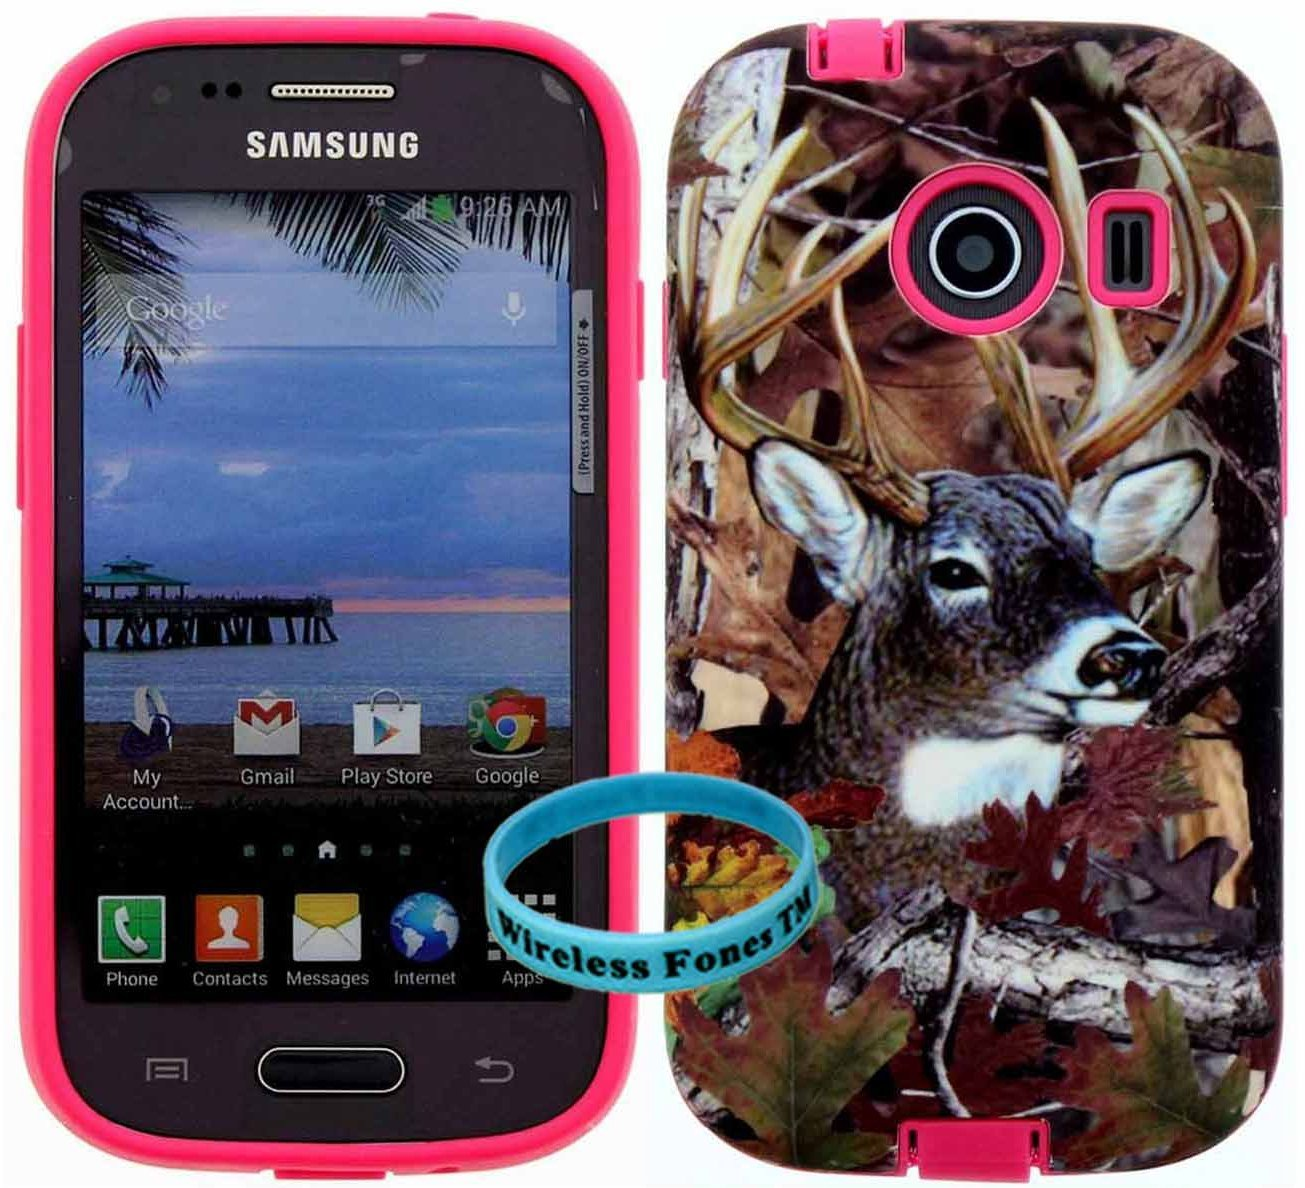 Samsung Galaxy Ace Style / SM-G310 / S765C ] for Net 10